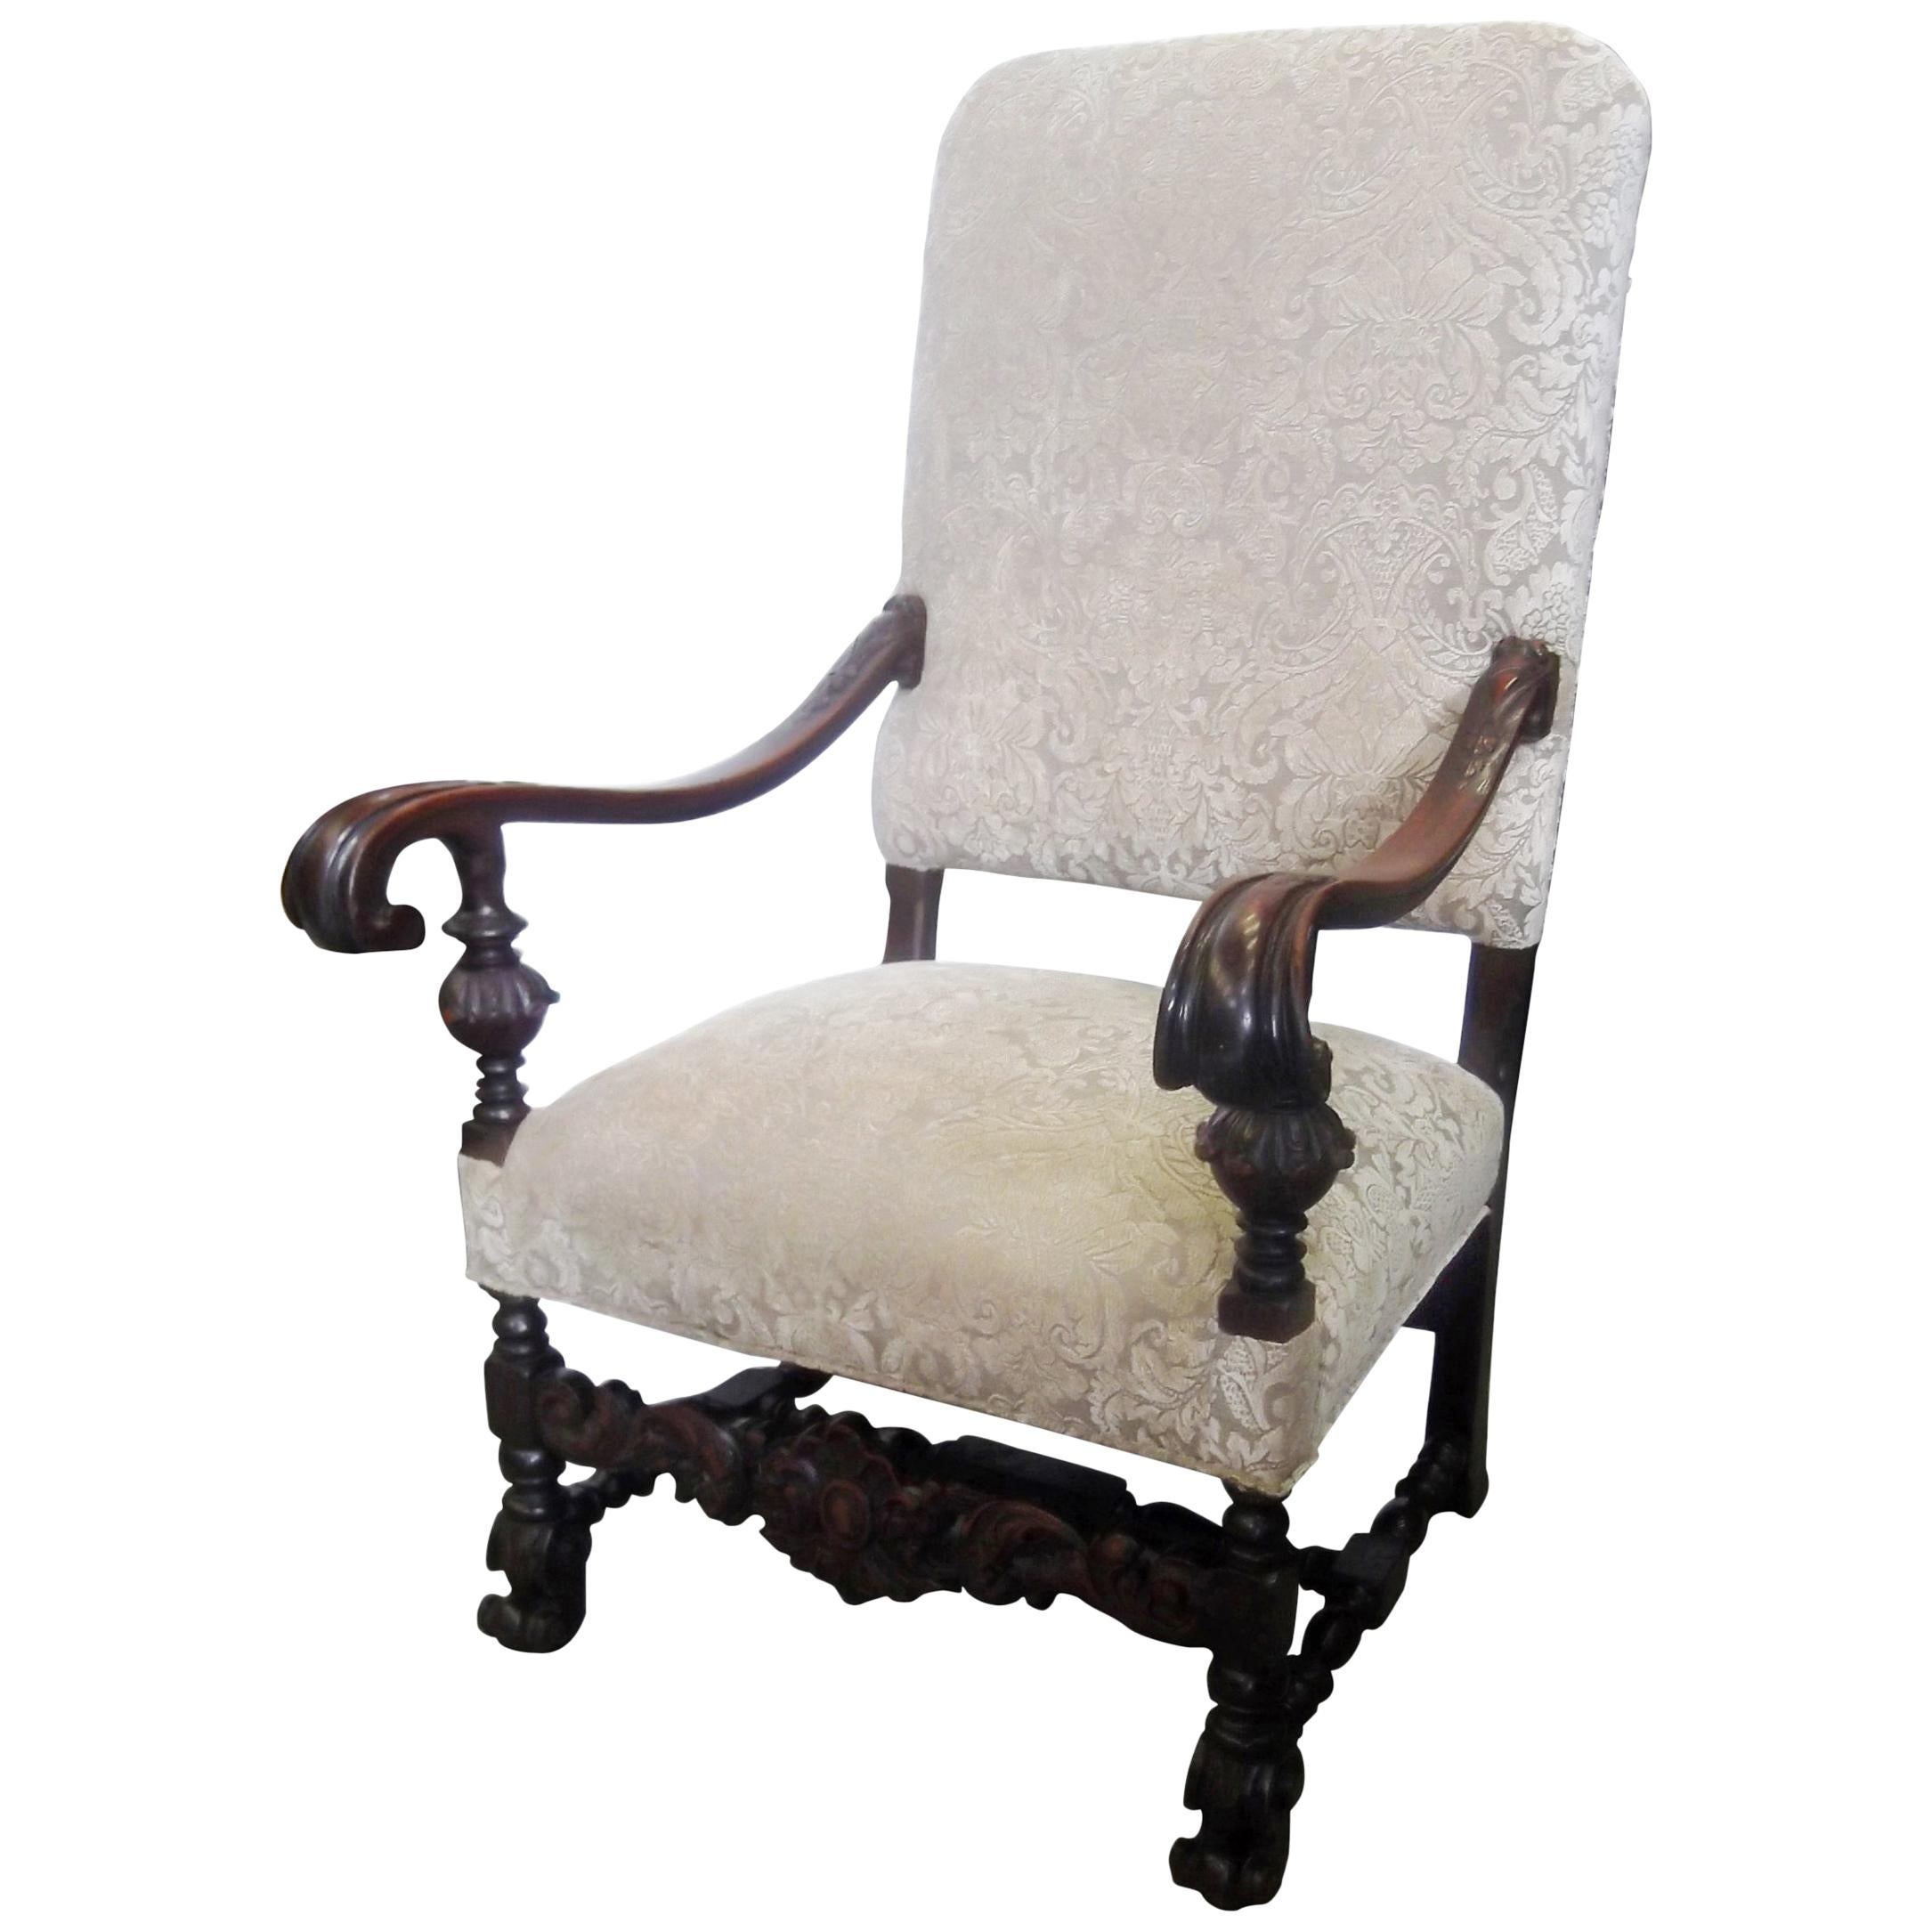 19th Century Jacobean Style Carved Walnut Upholstered Armchair